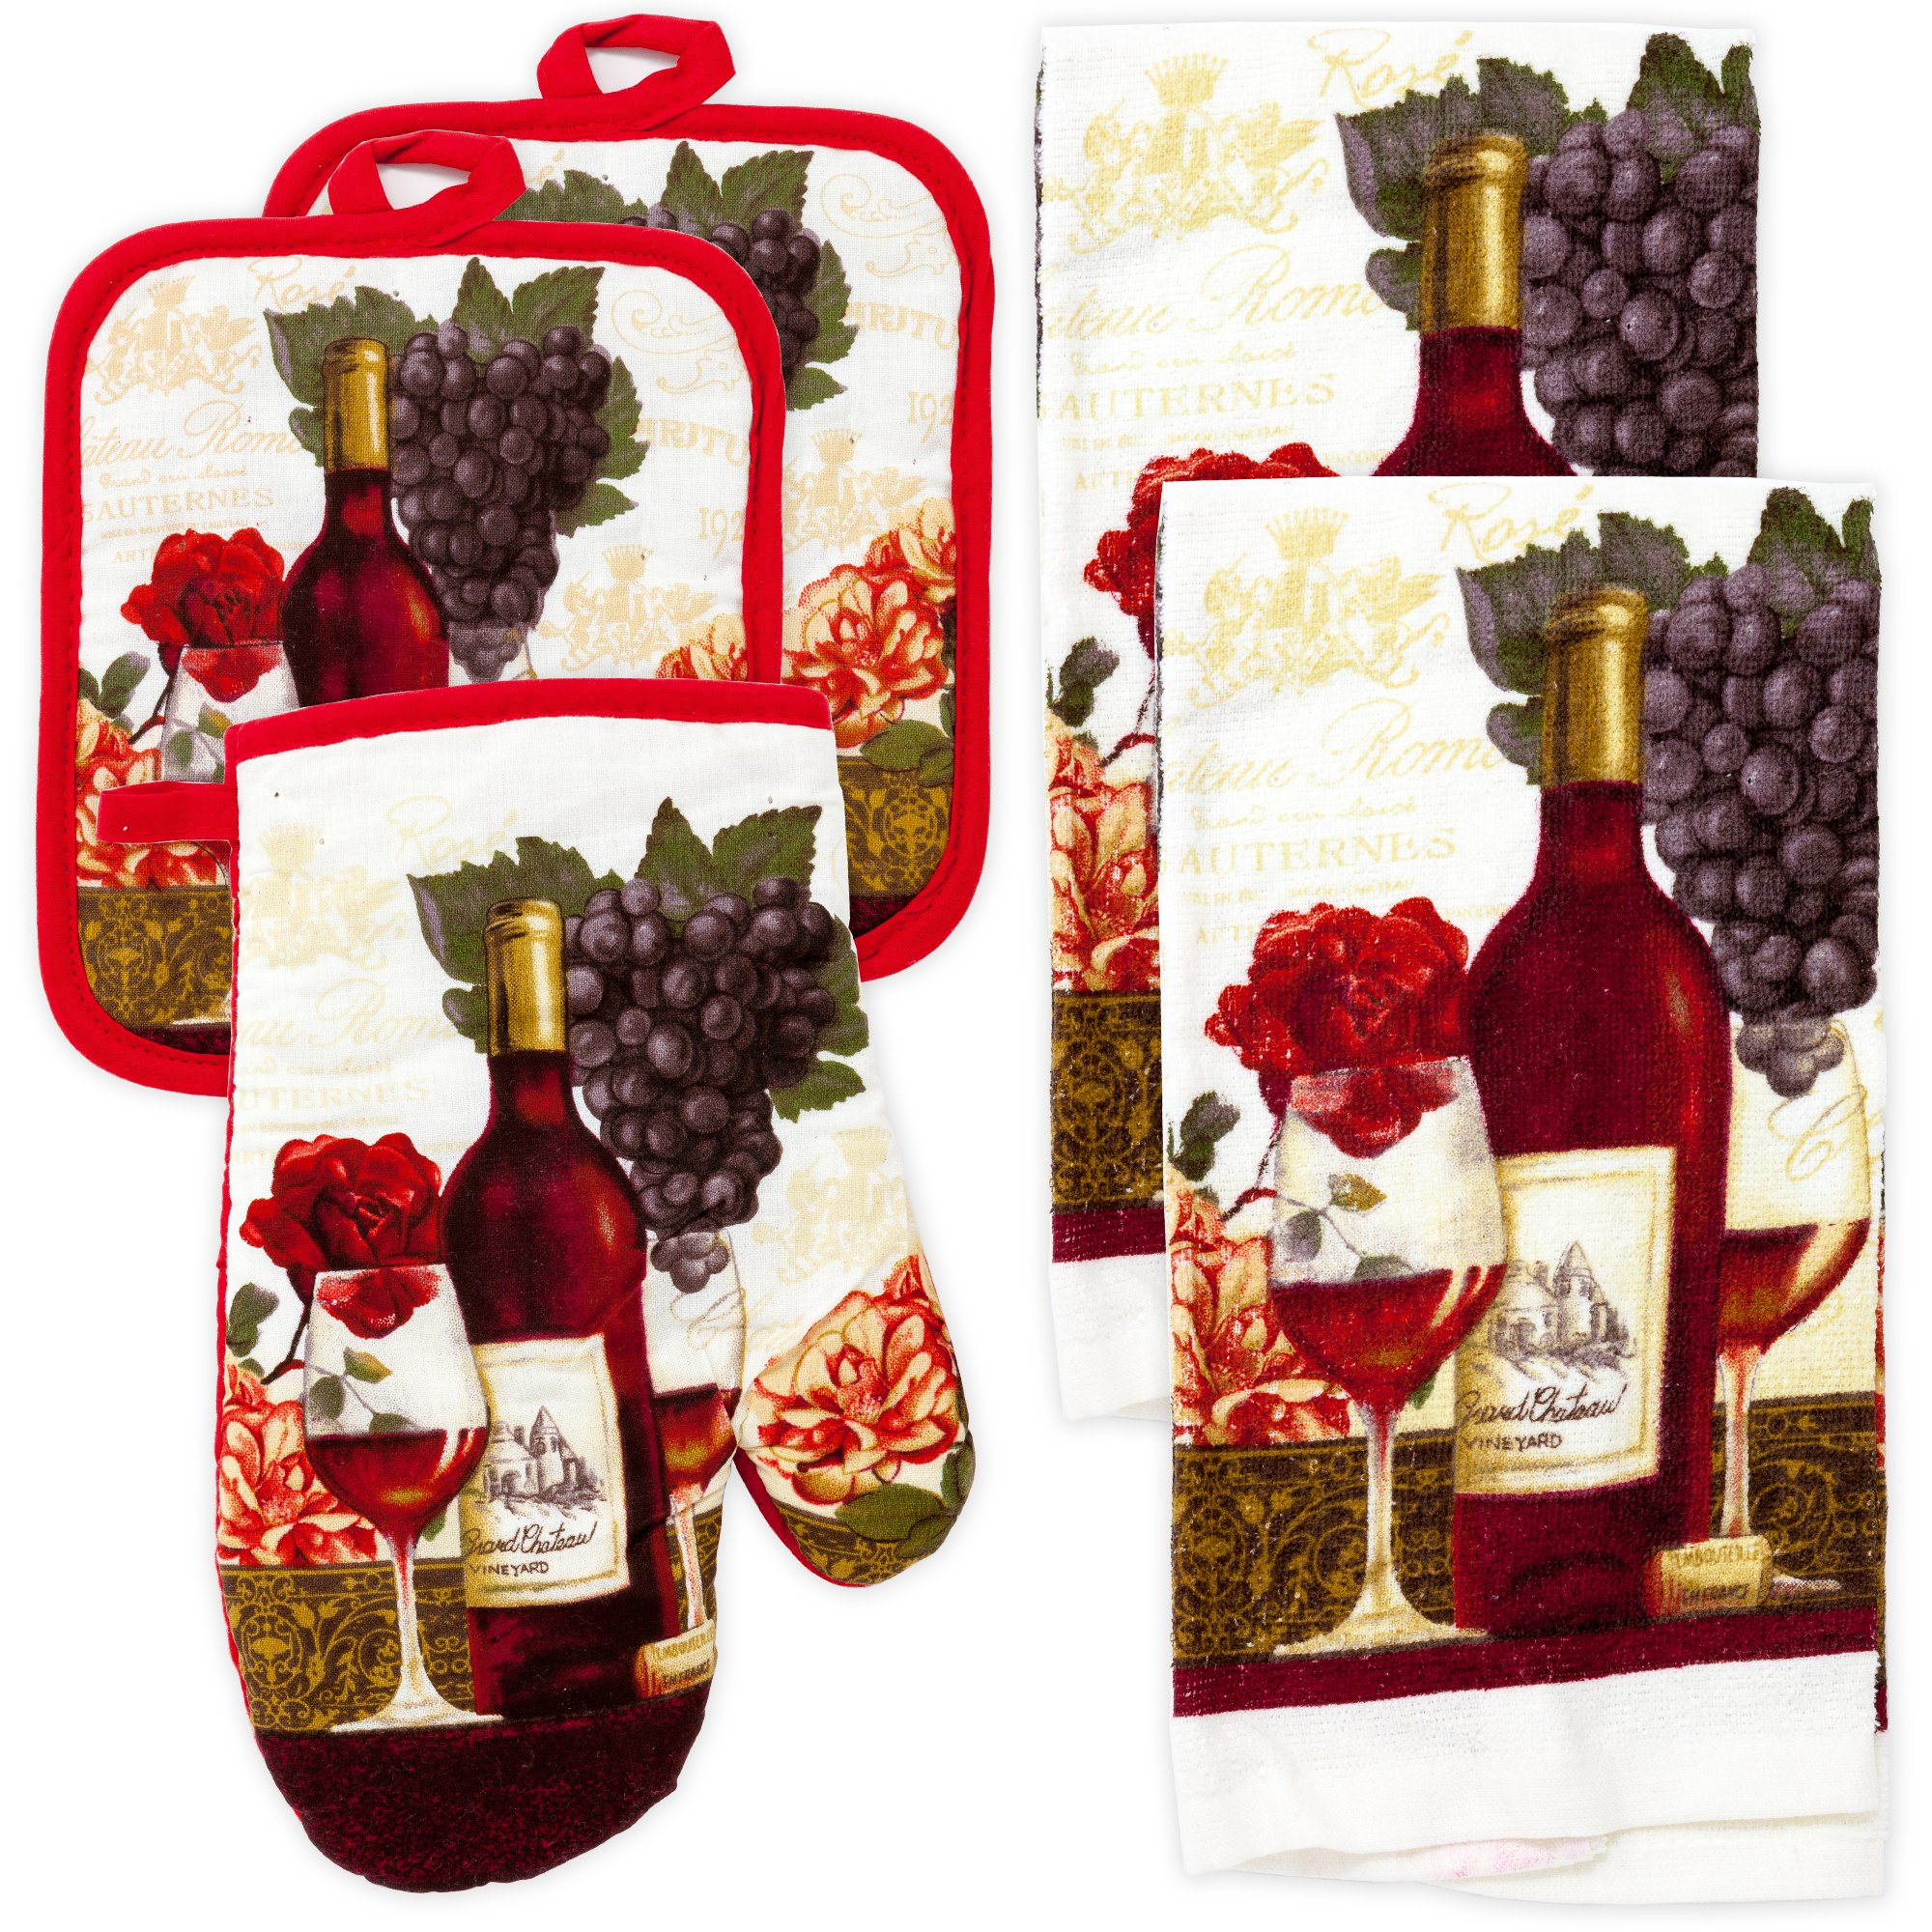 MJM Innovations Kitchen Towel Linen Set of 5 Pieces | 2 Towels 2 Potholders & 1 Oven Mitten | Featuring Wine Vineyard Grapes, Wine Glass & Bottle, Red Rose Flower, Bordeaux Chateau Roma (Wine)